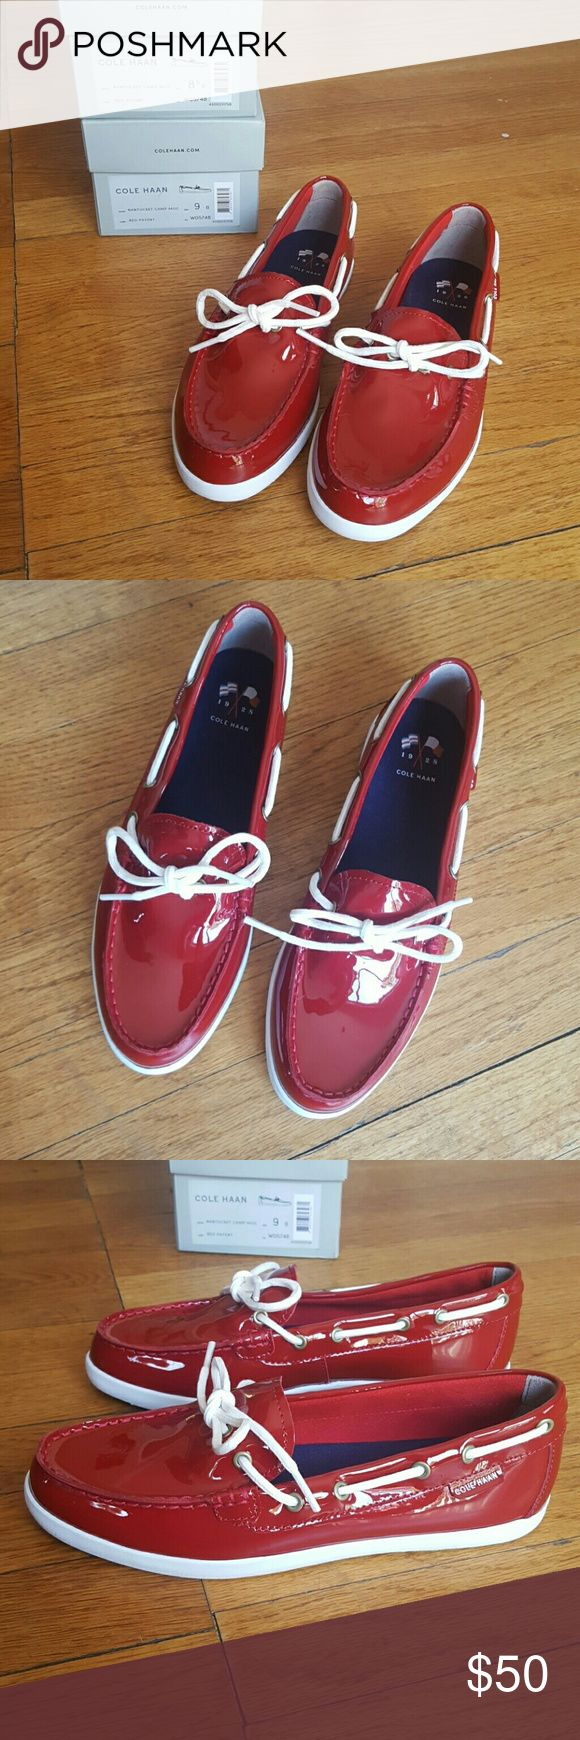 NEW COLE HAAN PINCH NANTUCKET CAMP MOC COLE HAAN PINCH NANTUCKET CAMP MOC RED PATENT  NEW WITH BOX NWB WOMENS SHOES FLATS MOCS DRIVERS Size 8 8.5 and 9 Cole Haan Shoes Moccasins